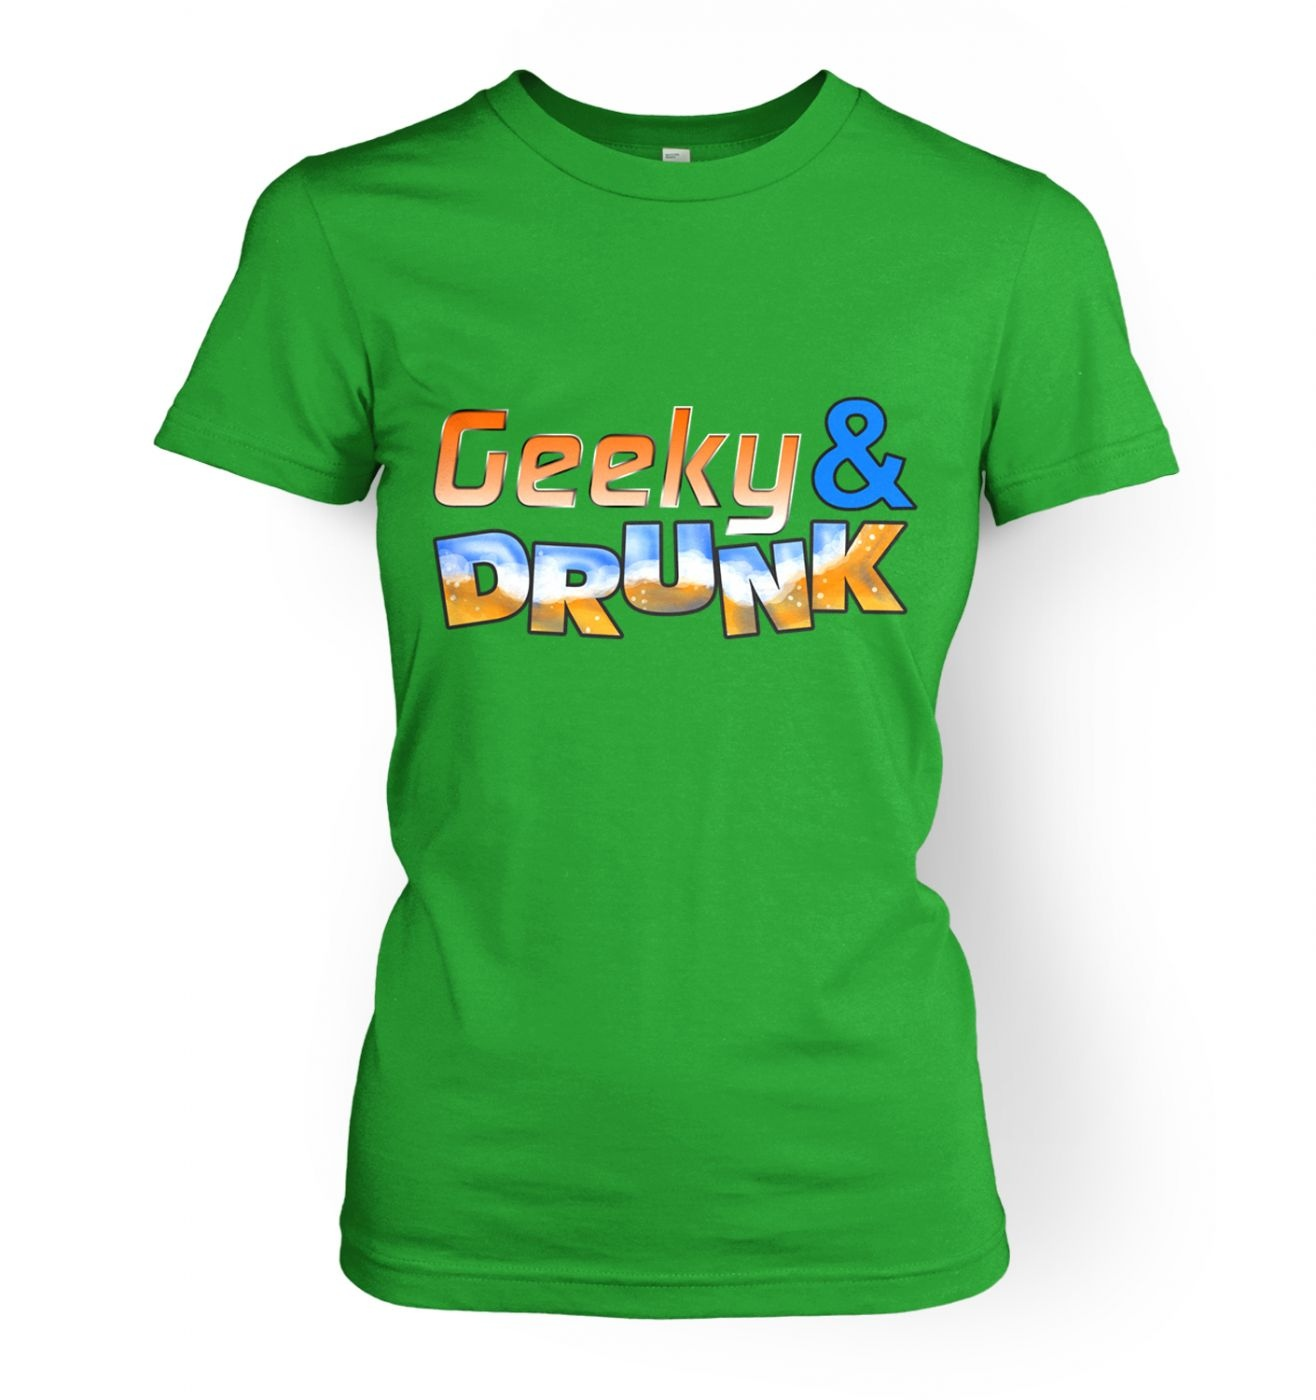 Geeky And Drunk women's t-shirt